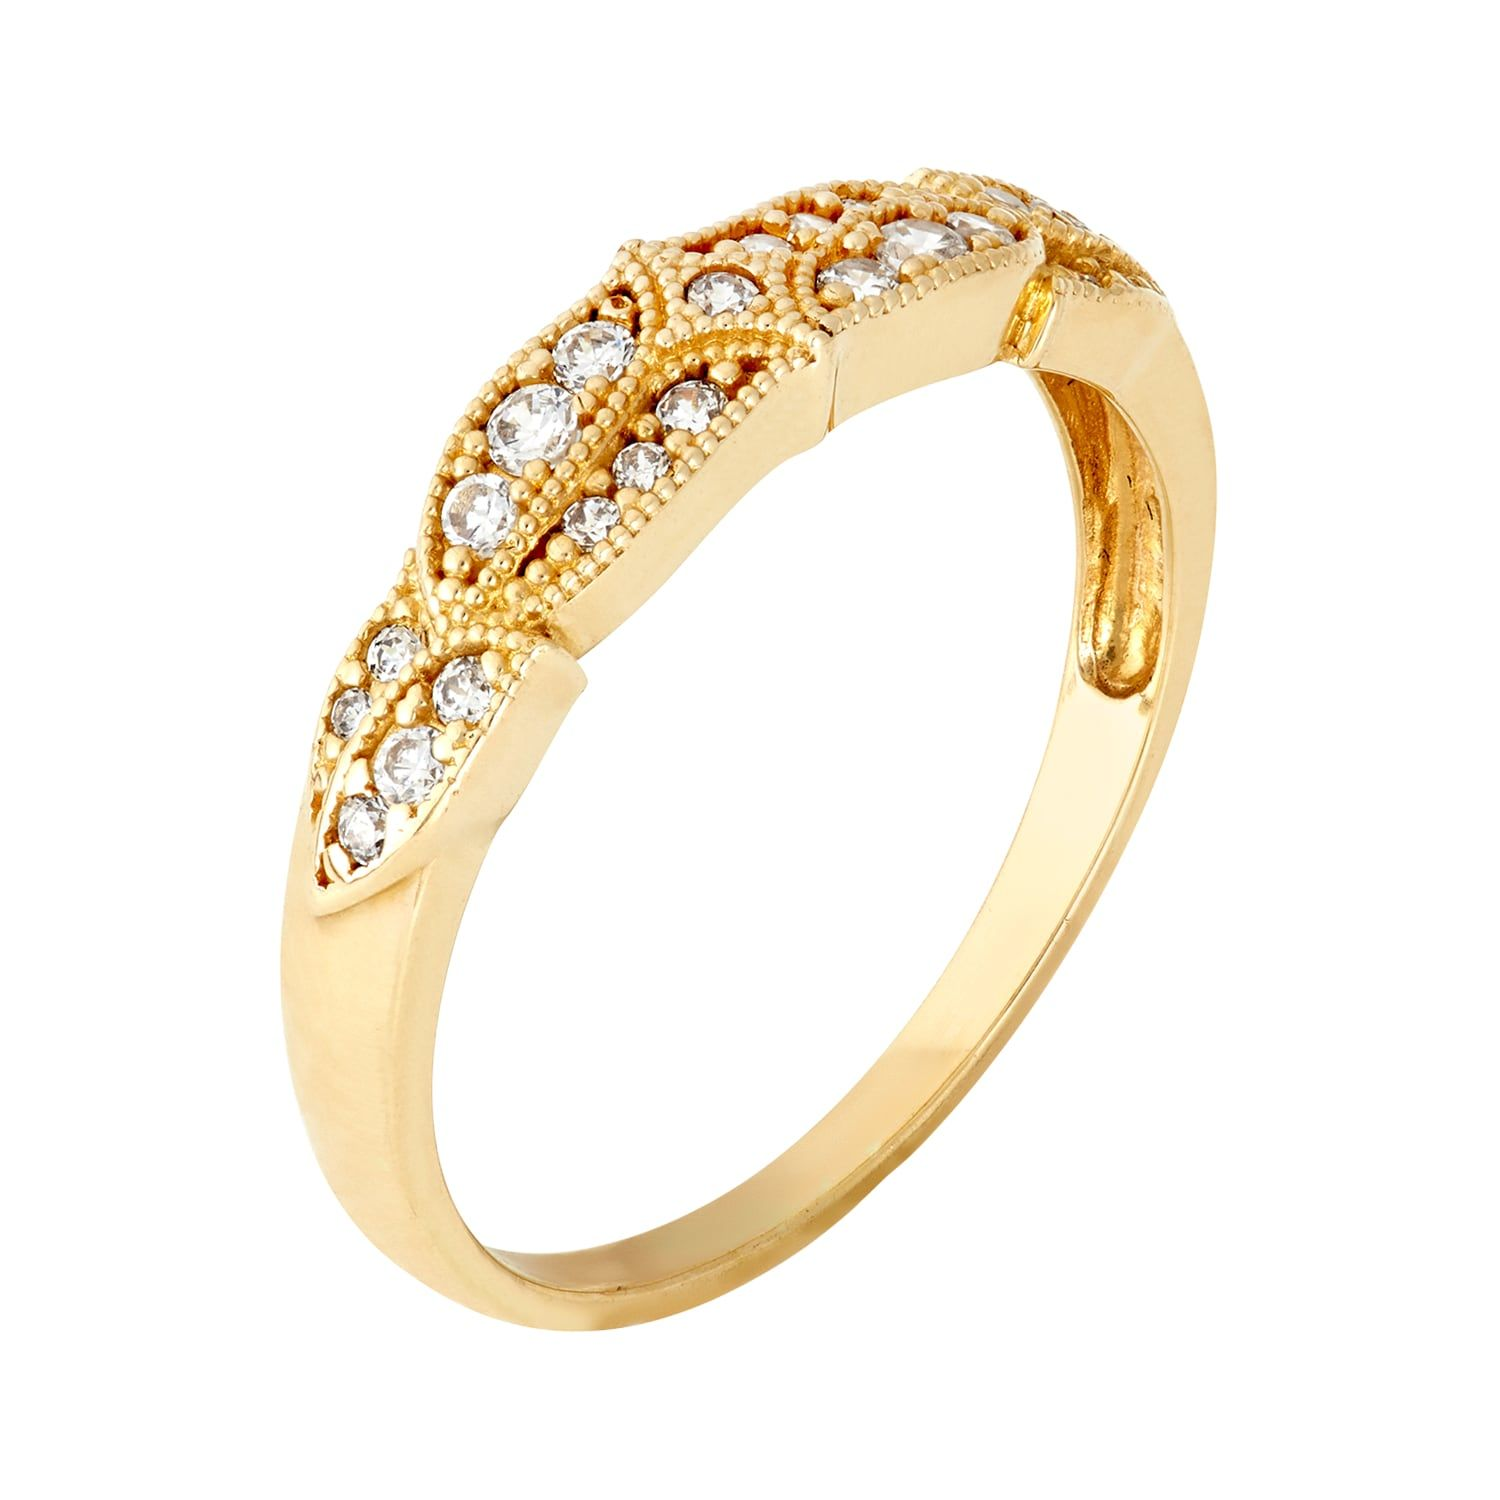 Cubic Zirconia Wedding Ring In 10k Gold Wedding Zirconia Cubic Gold